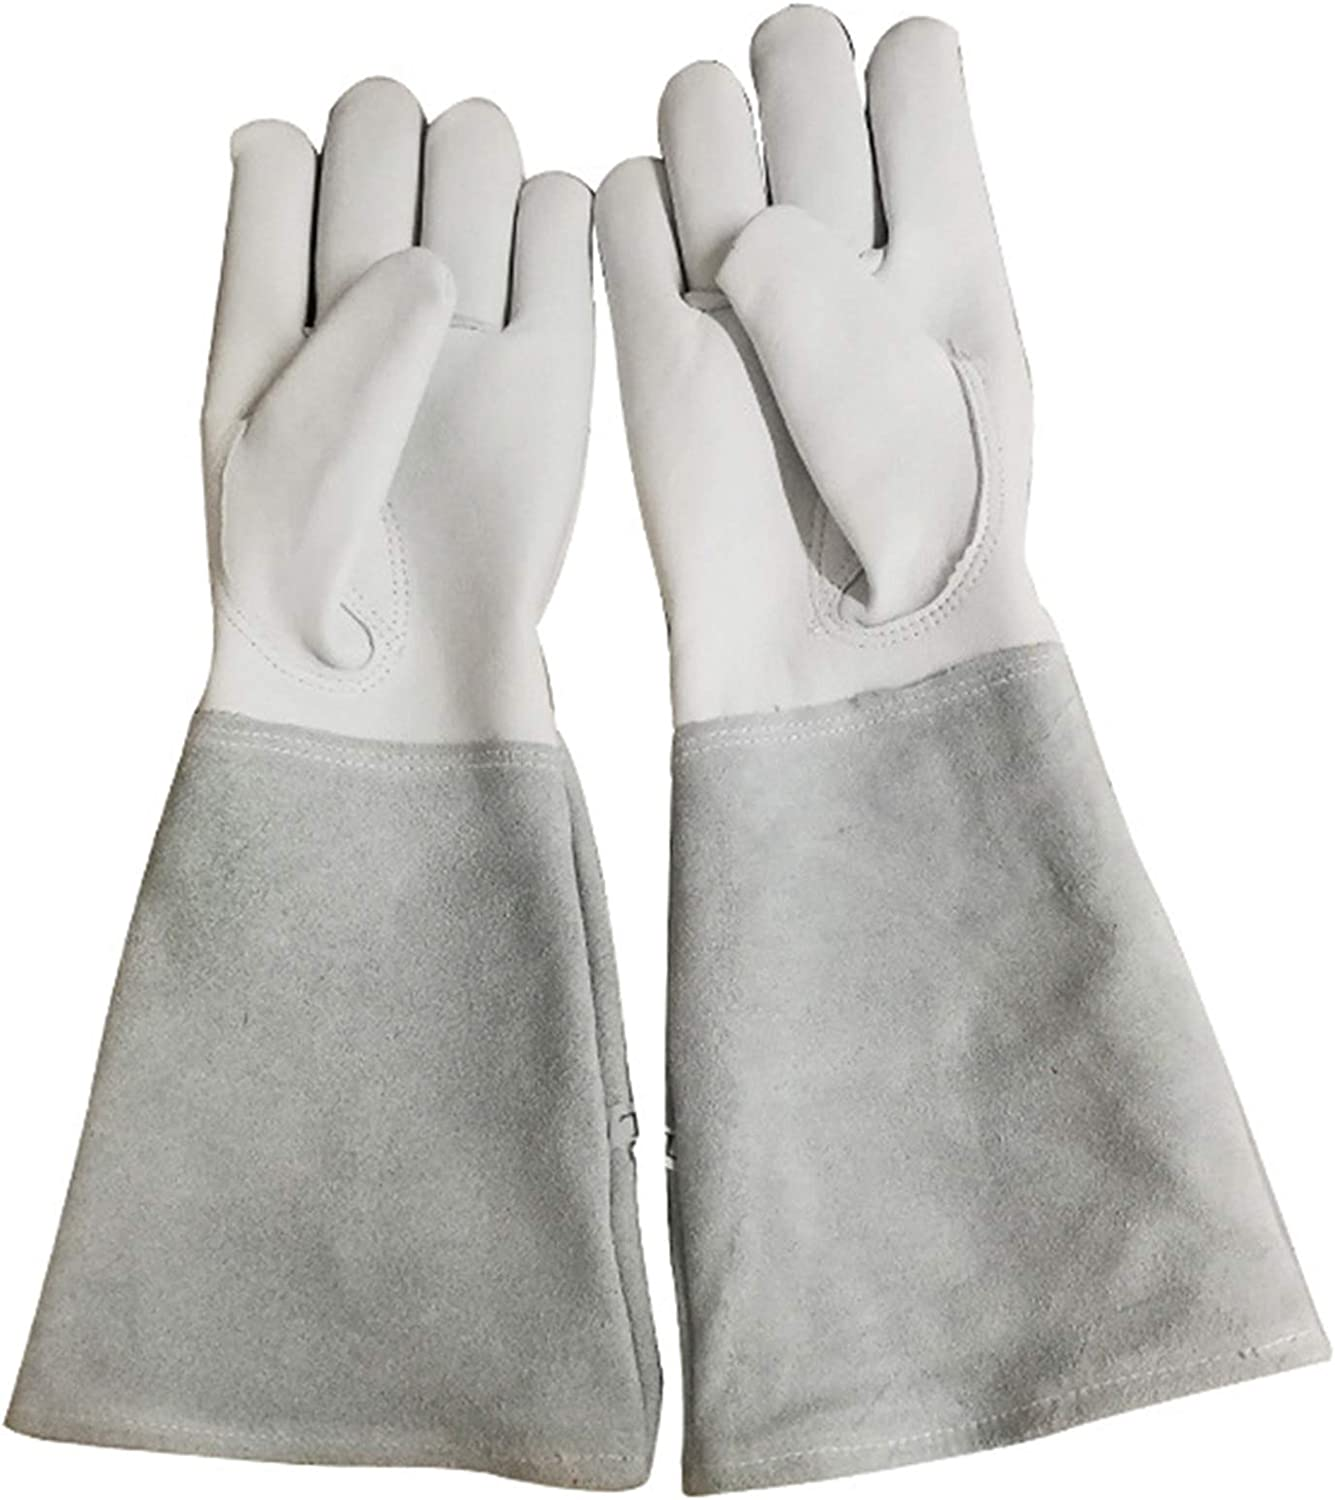 Gardening Gloves for safety Women 6-12-24 Coat Rubber Pairs Breathable 67% OFF of fixed price